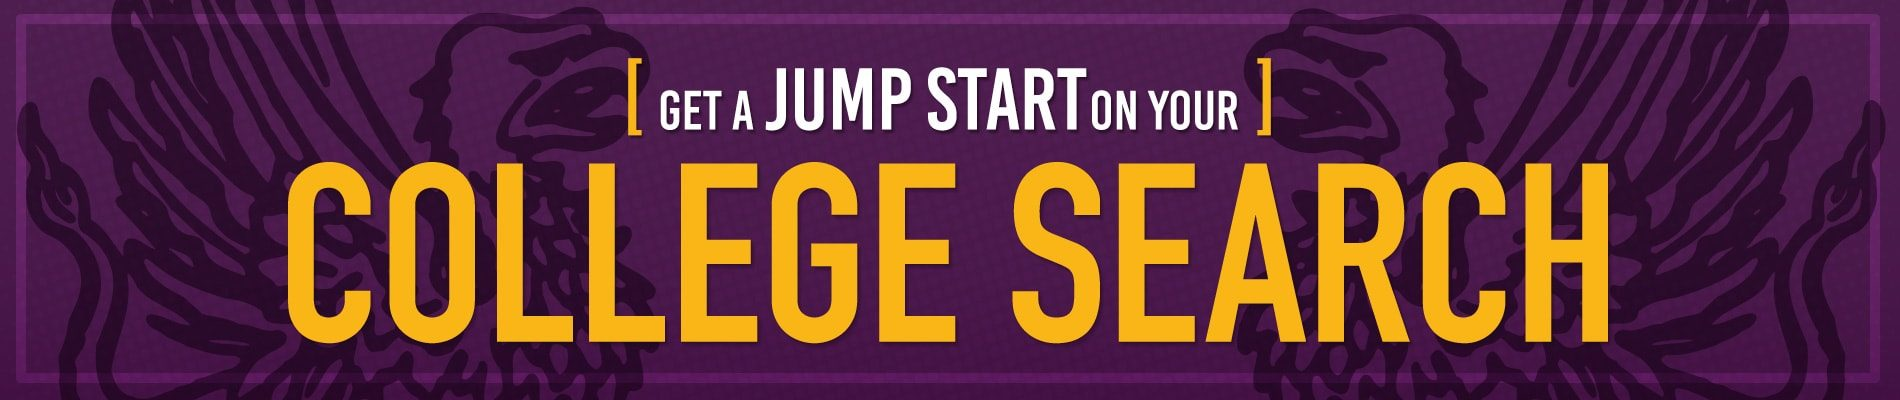 Banner: Get a Jump Start on your college search